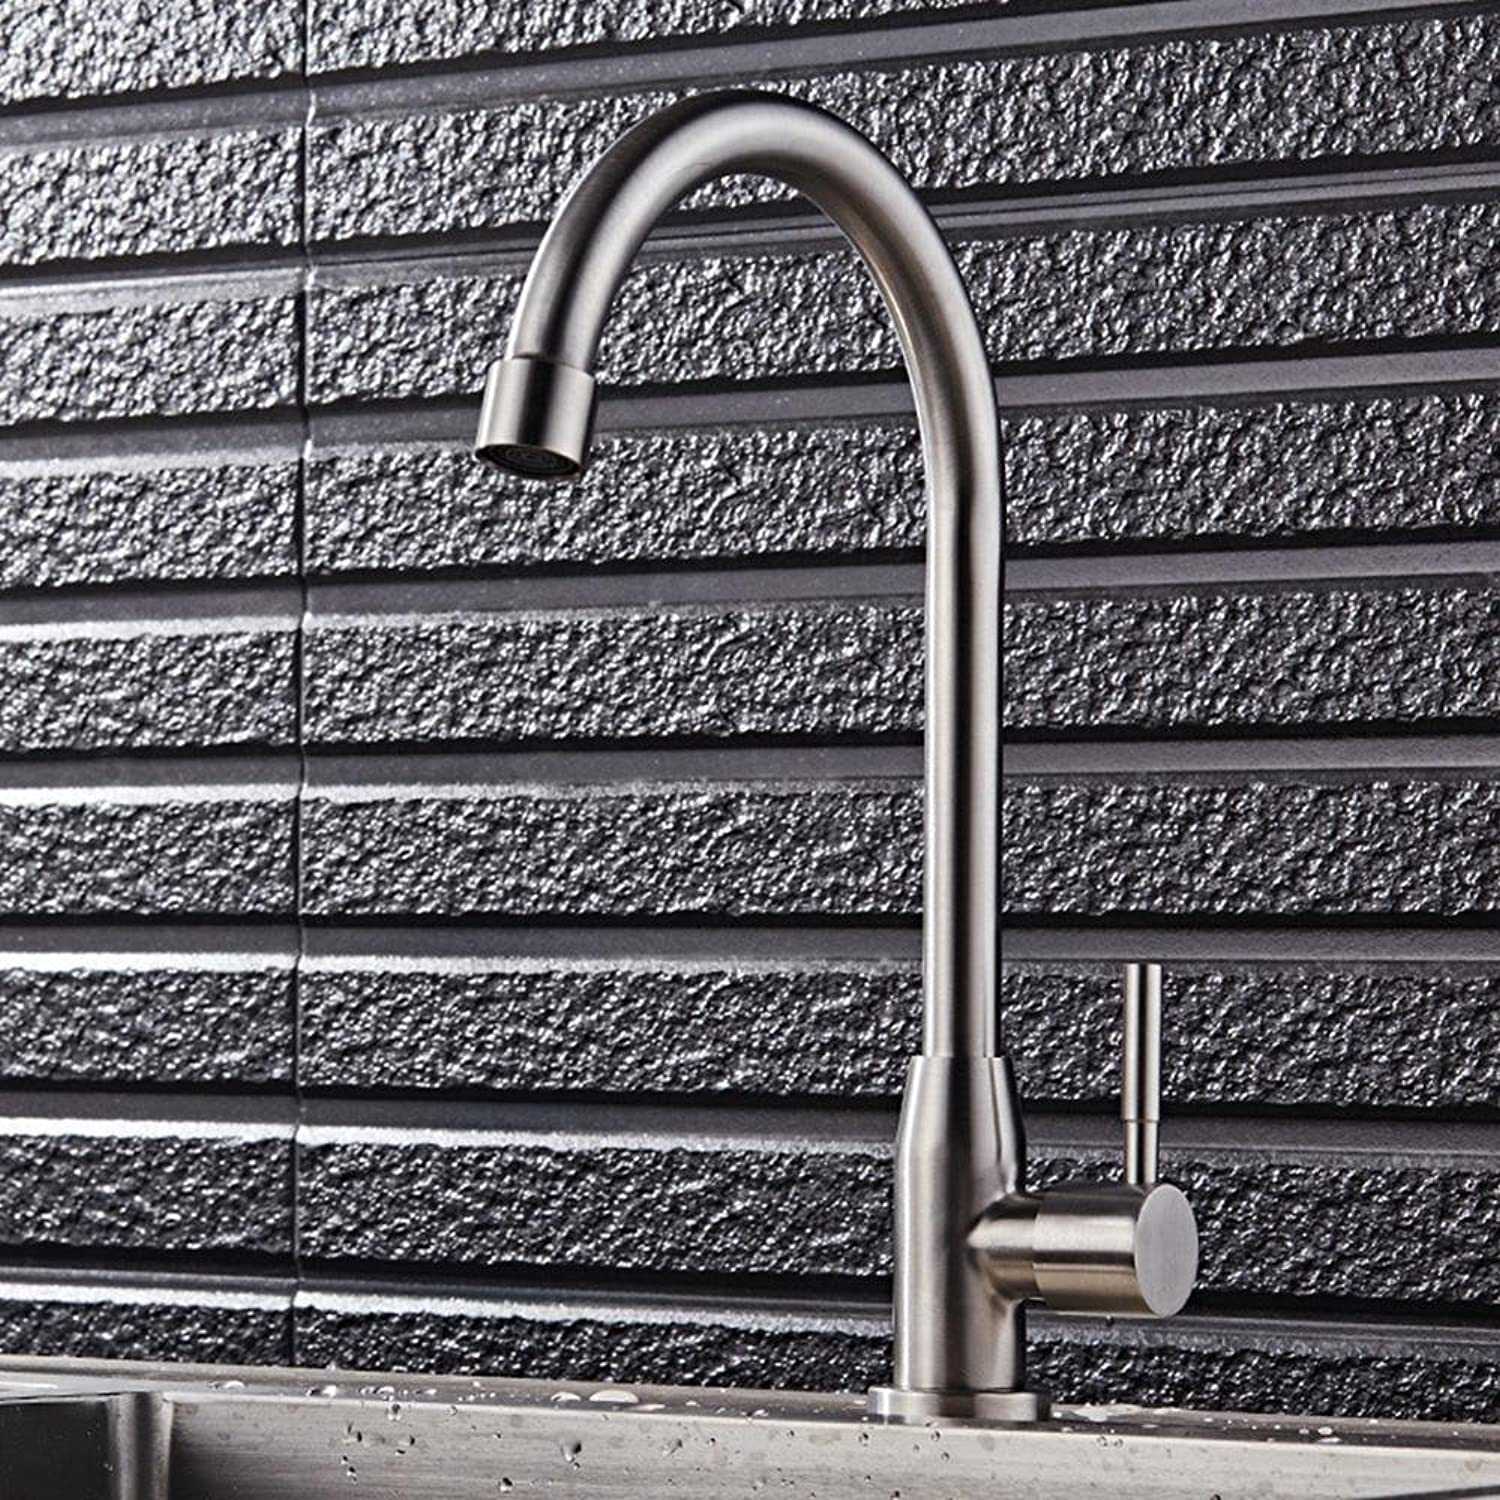 YI WORLD Faucet Single Handle Brass Stainless Steel Bathroom Sink Faucet